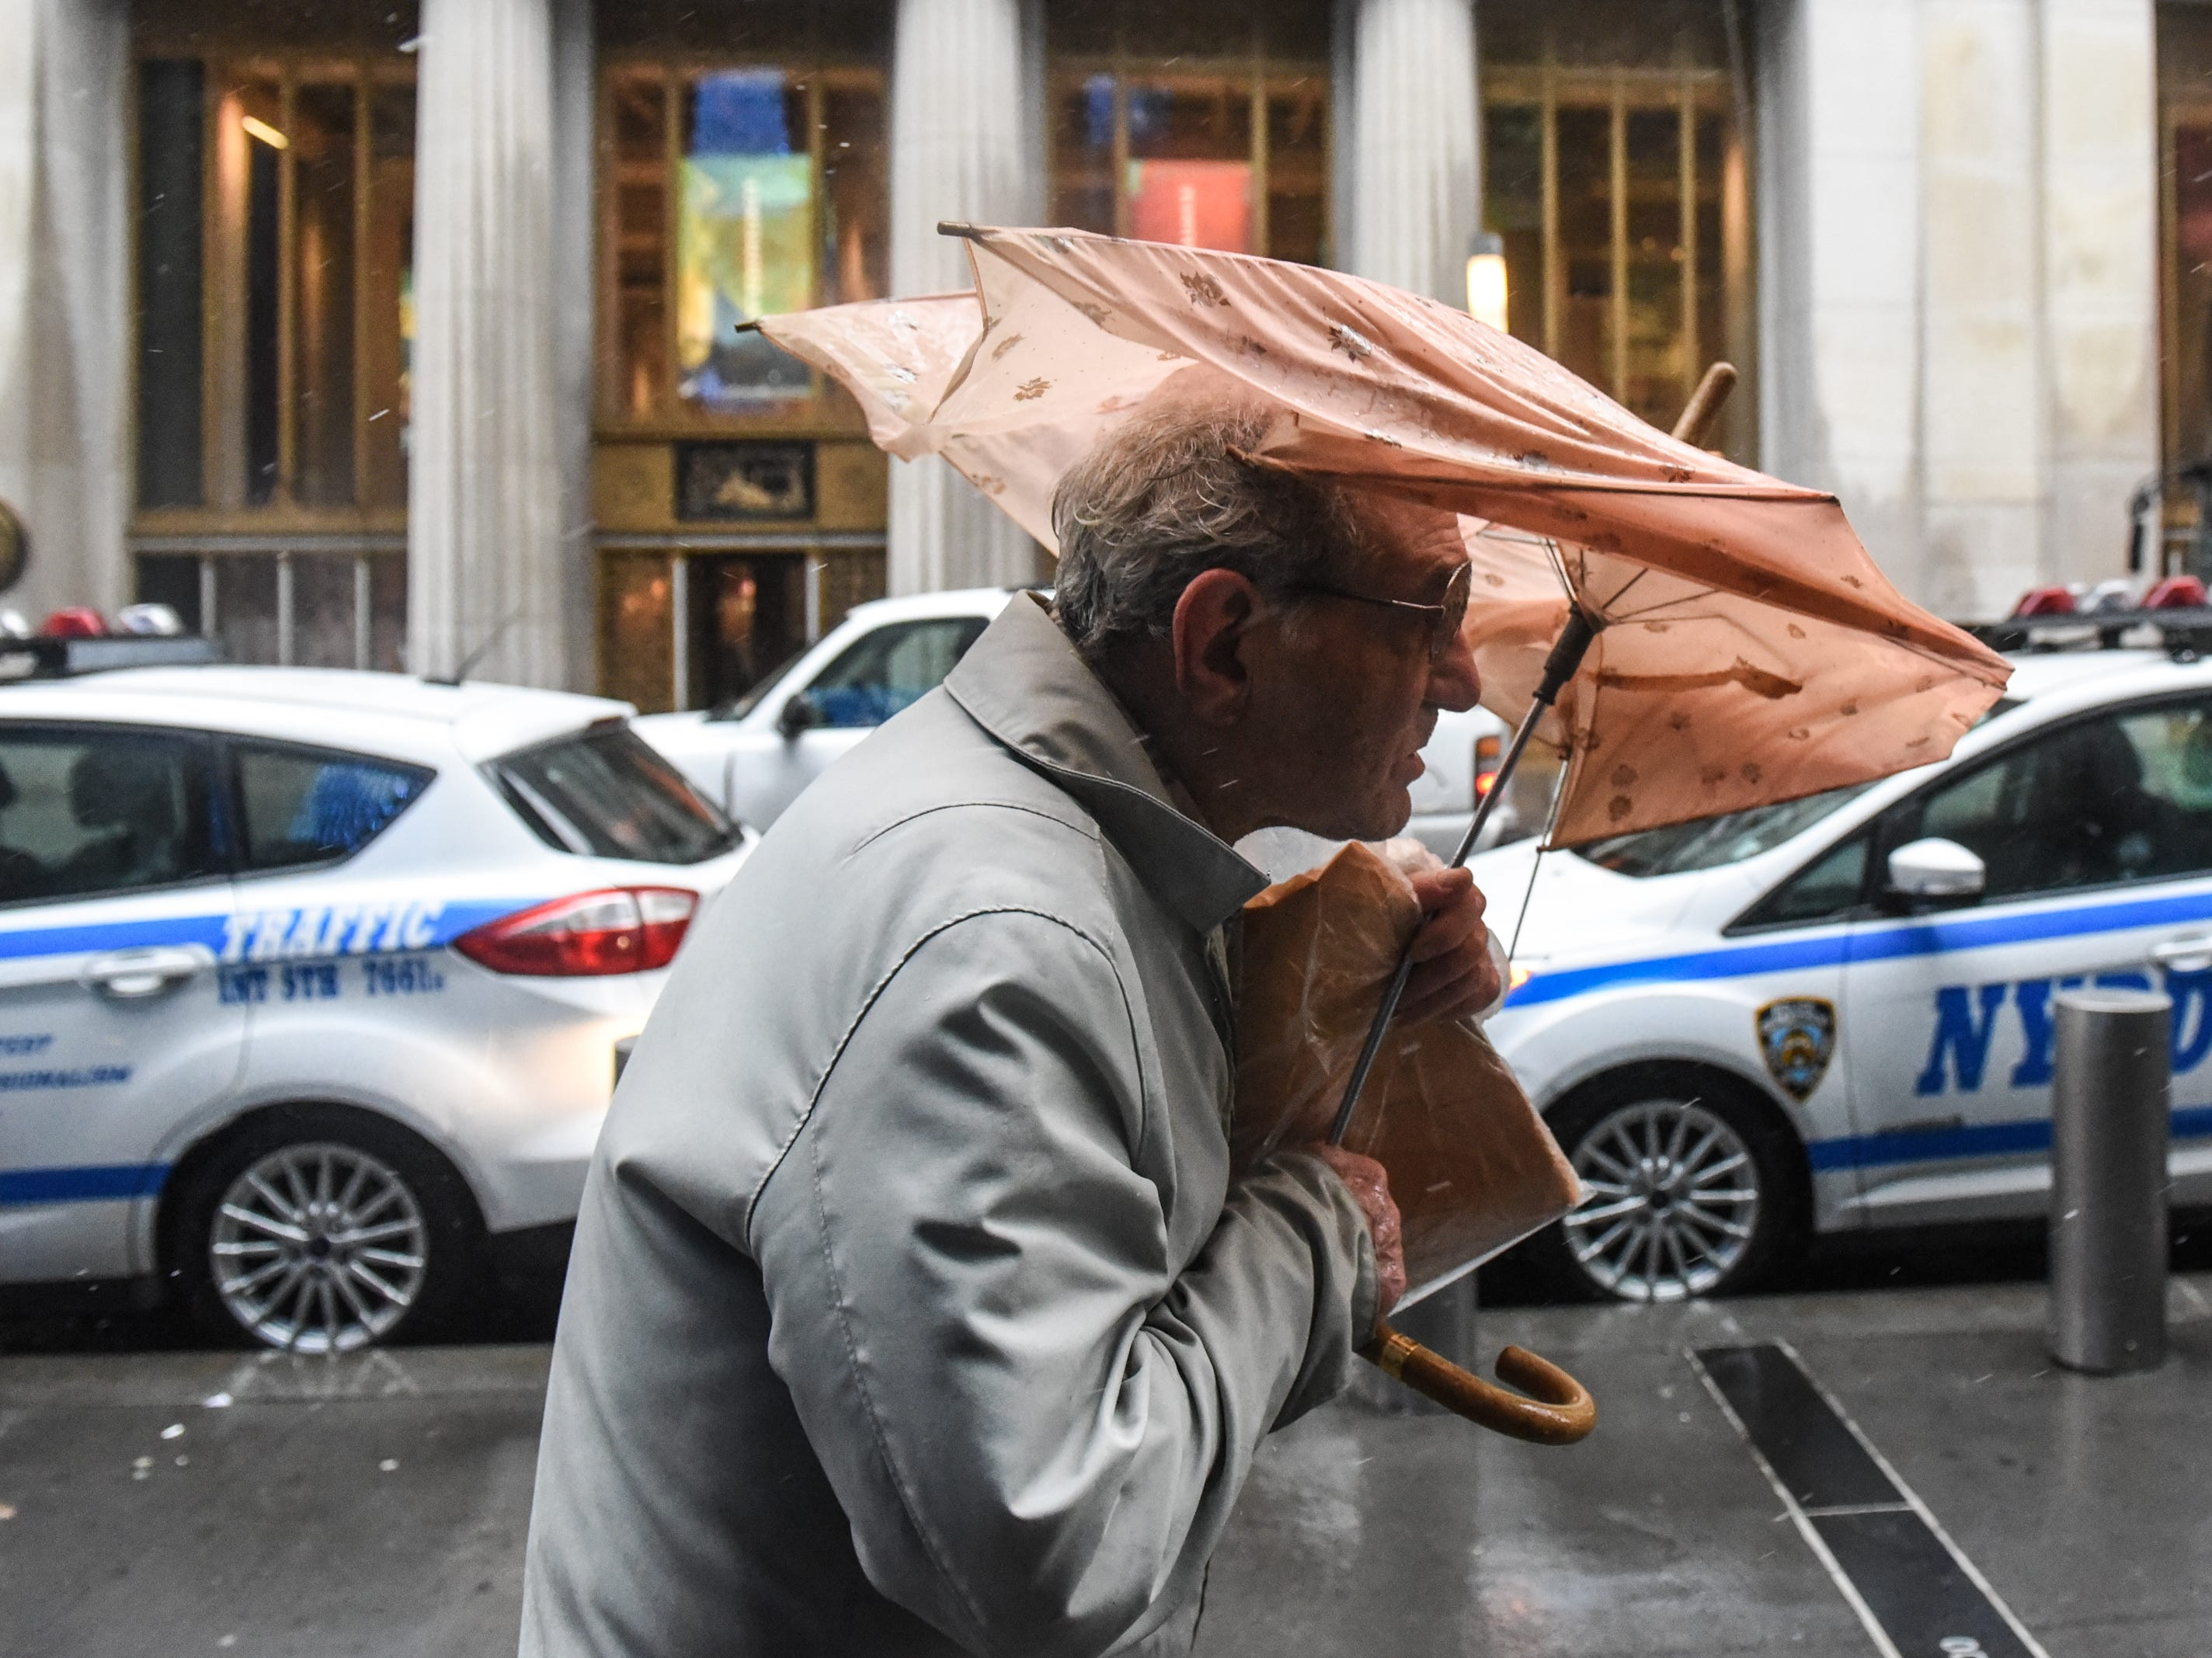 March 2, 2018: A person struggles with their umbrella during a storm in New York.